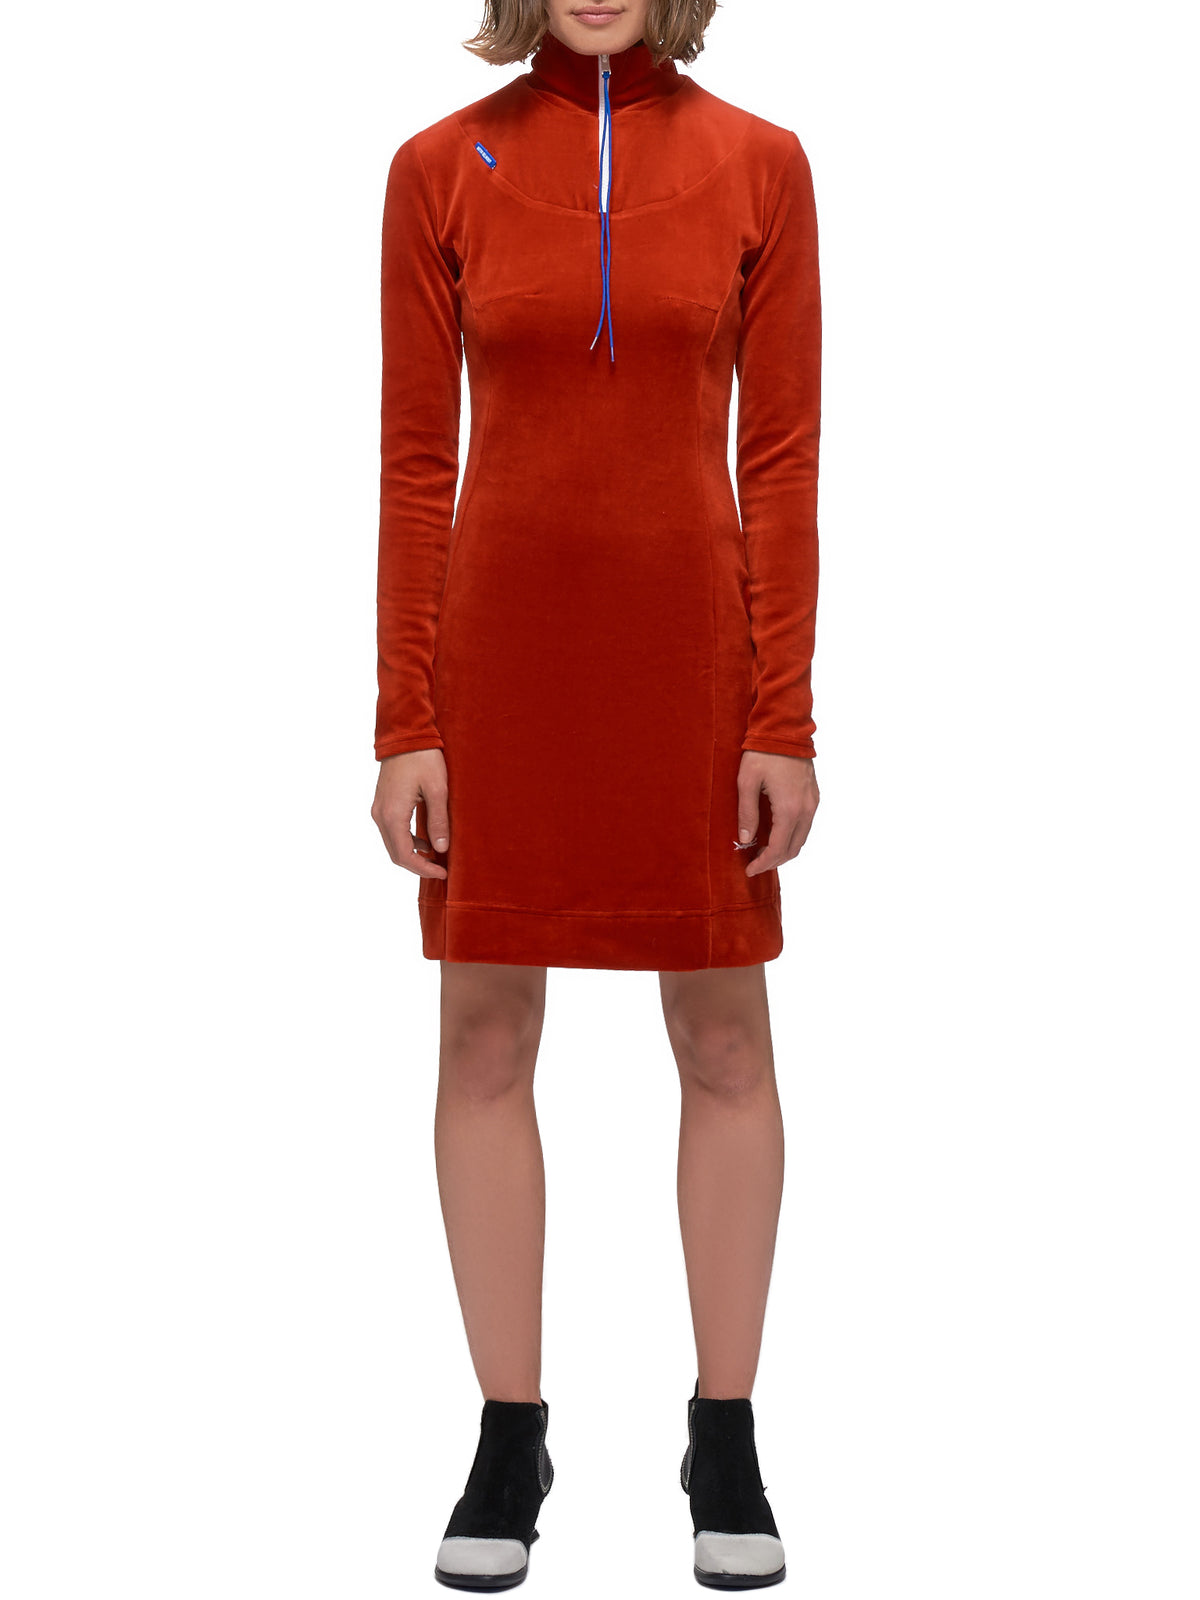 Microfiber Velour Dress (20-08-W-RED)